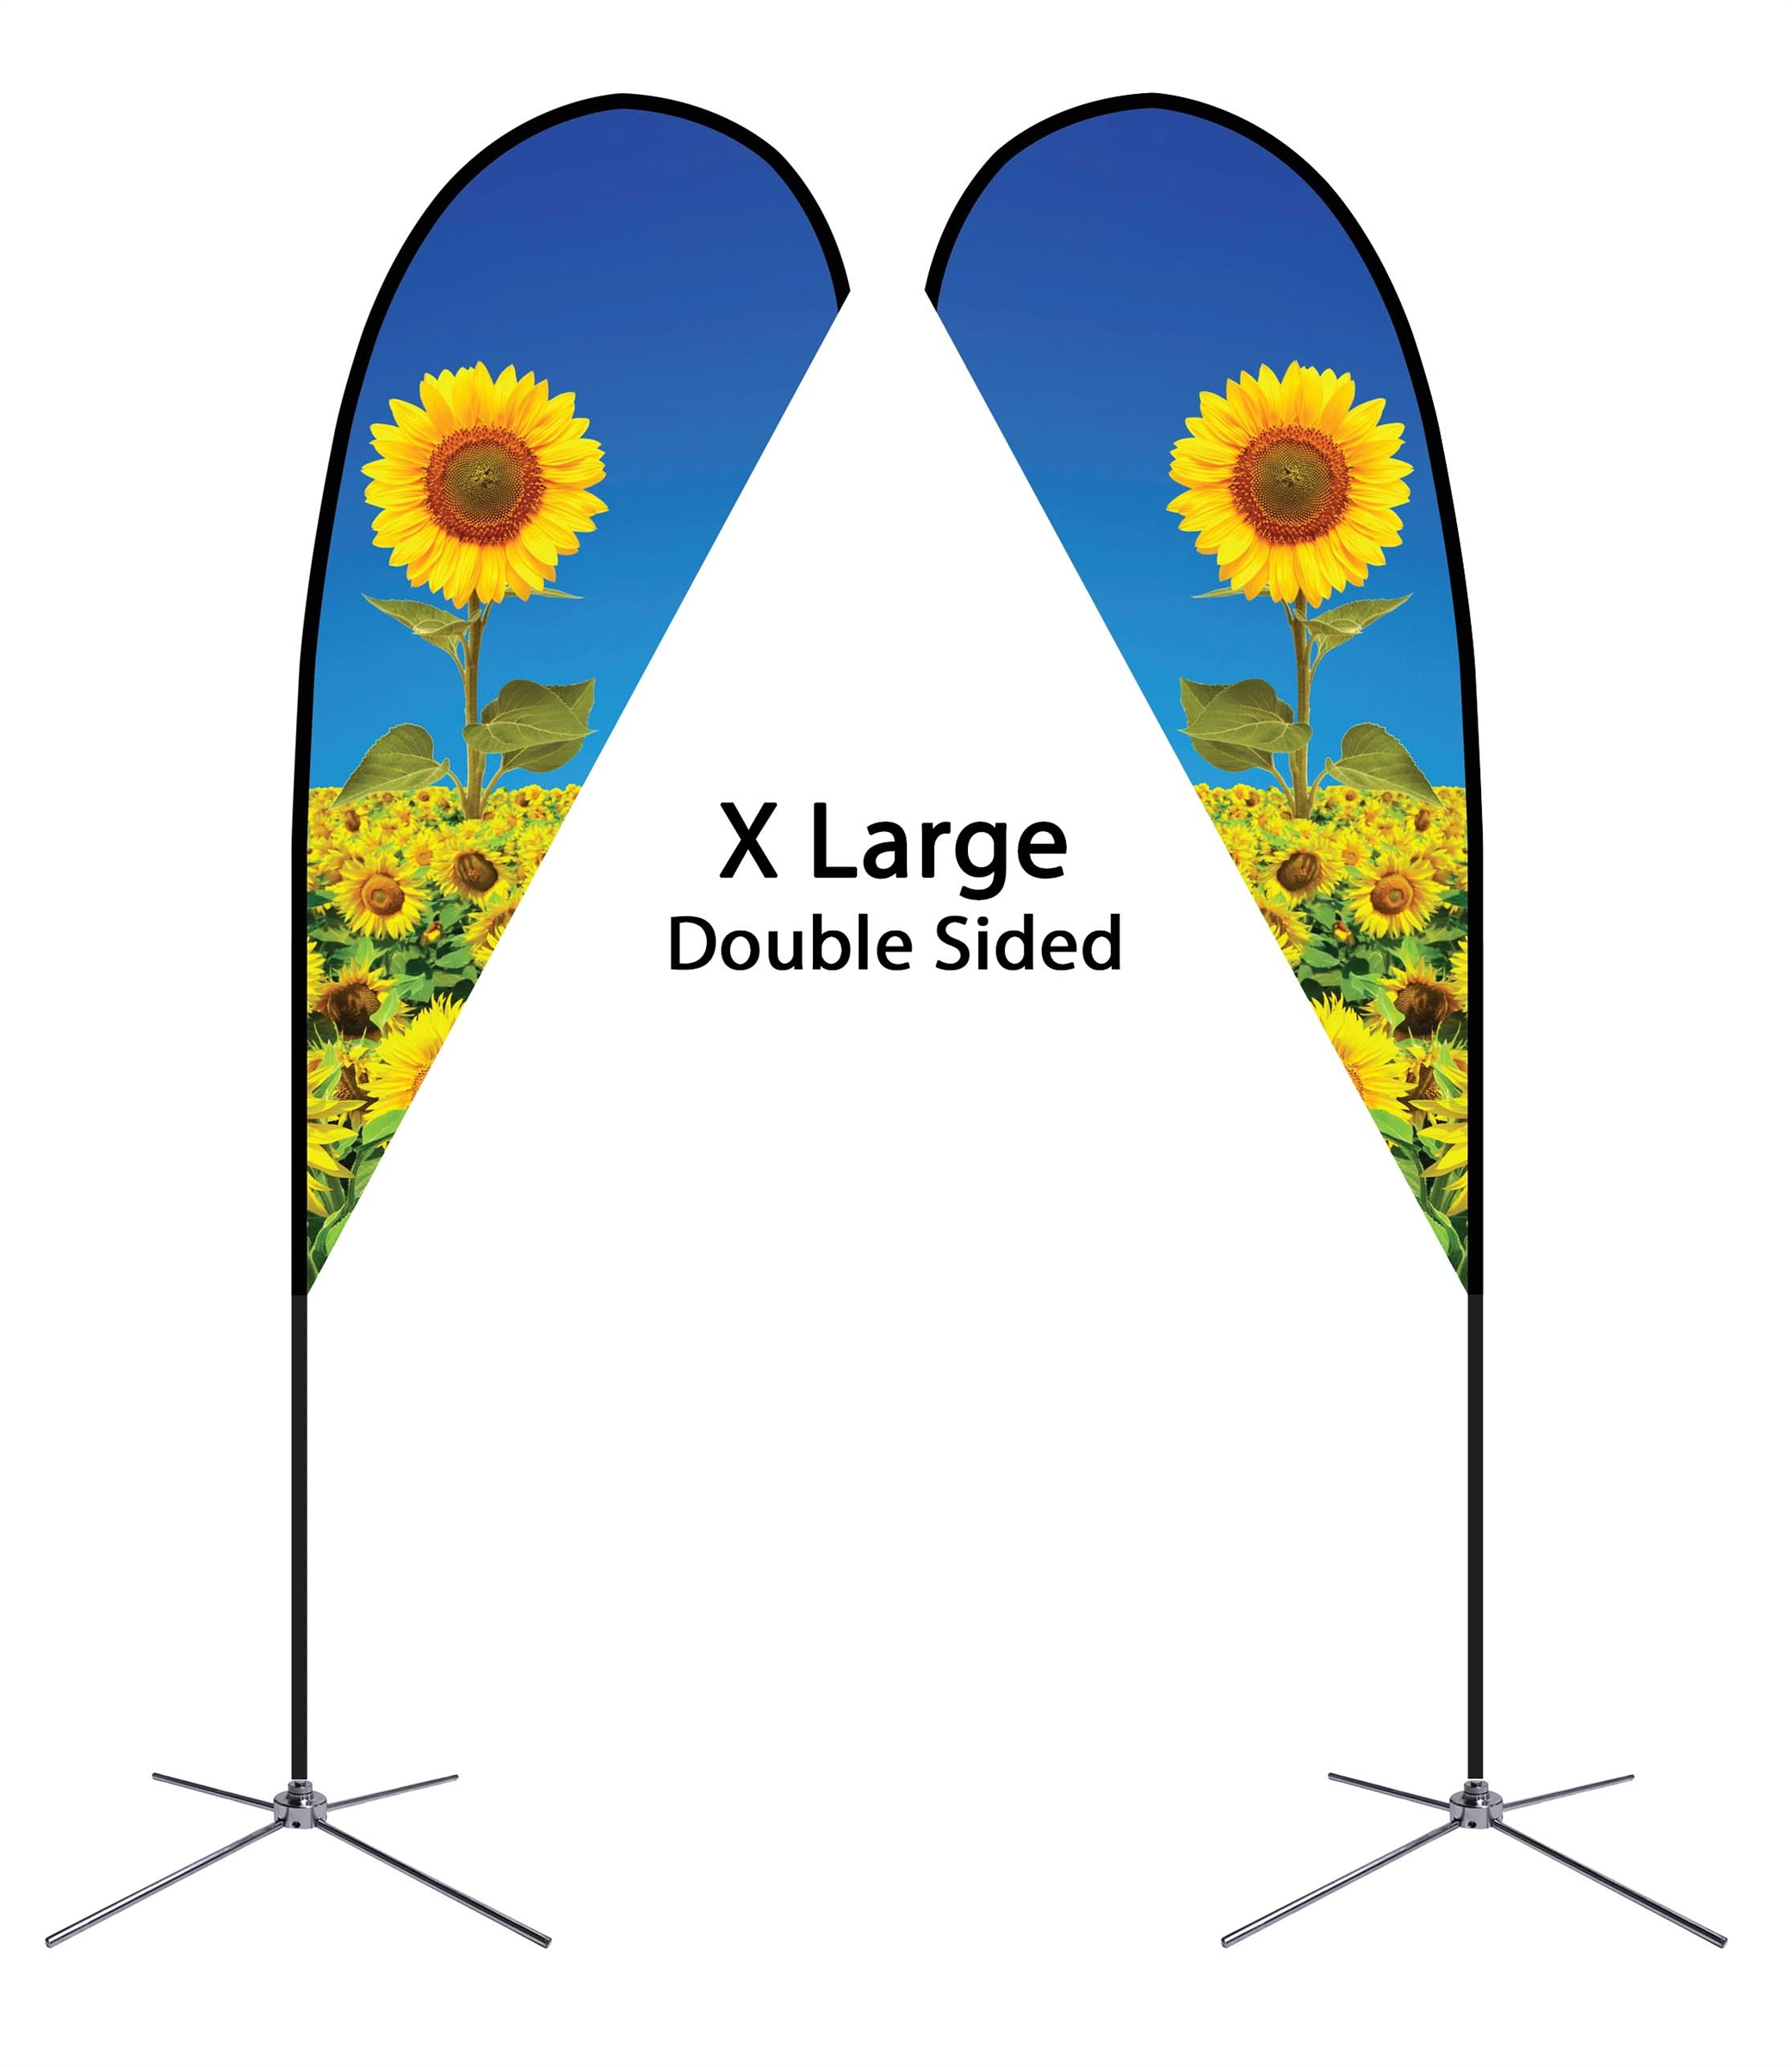 Teardrop Flag 16' Premium Double-Sided With Chrome X Base (X-Large)